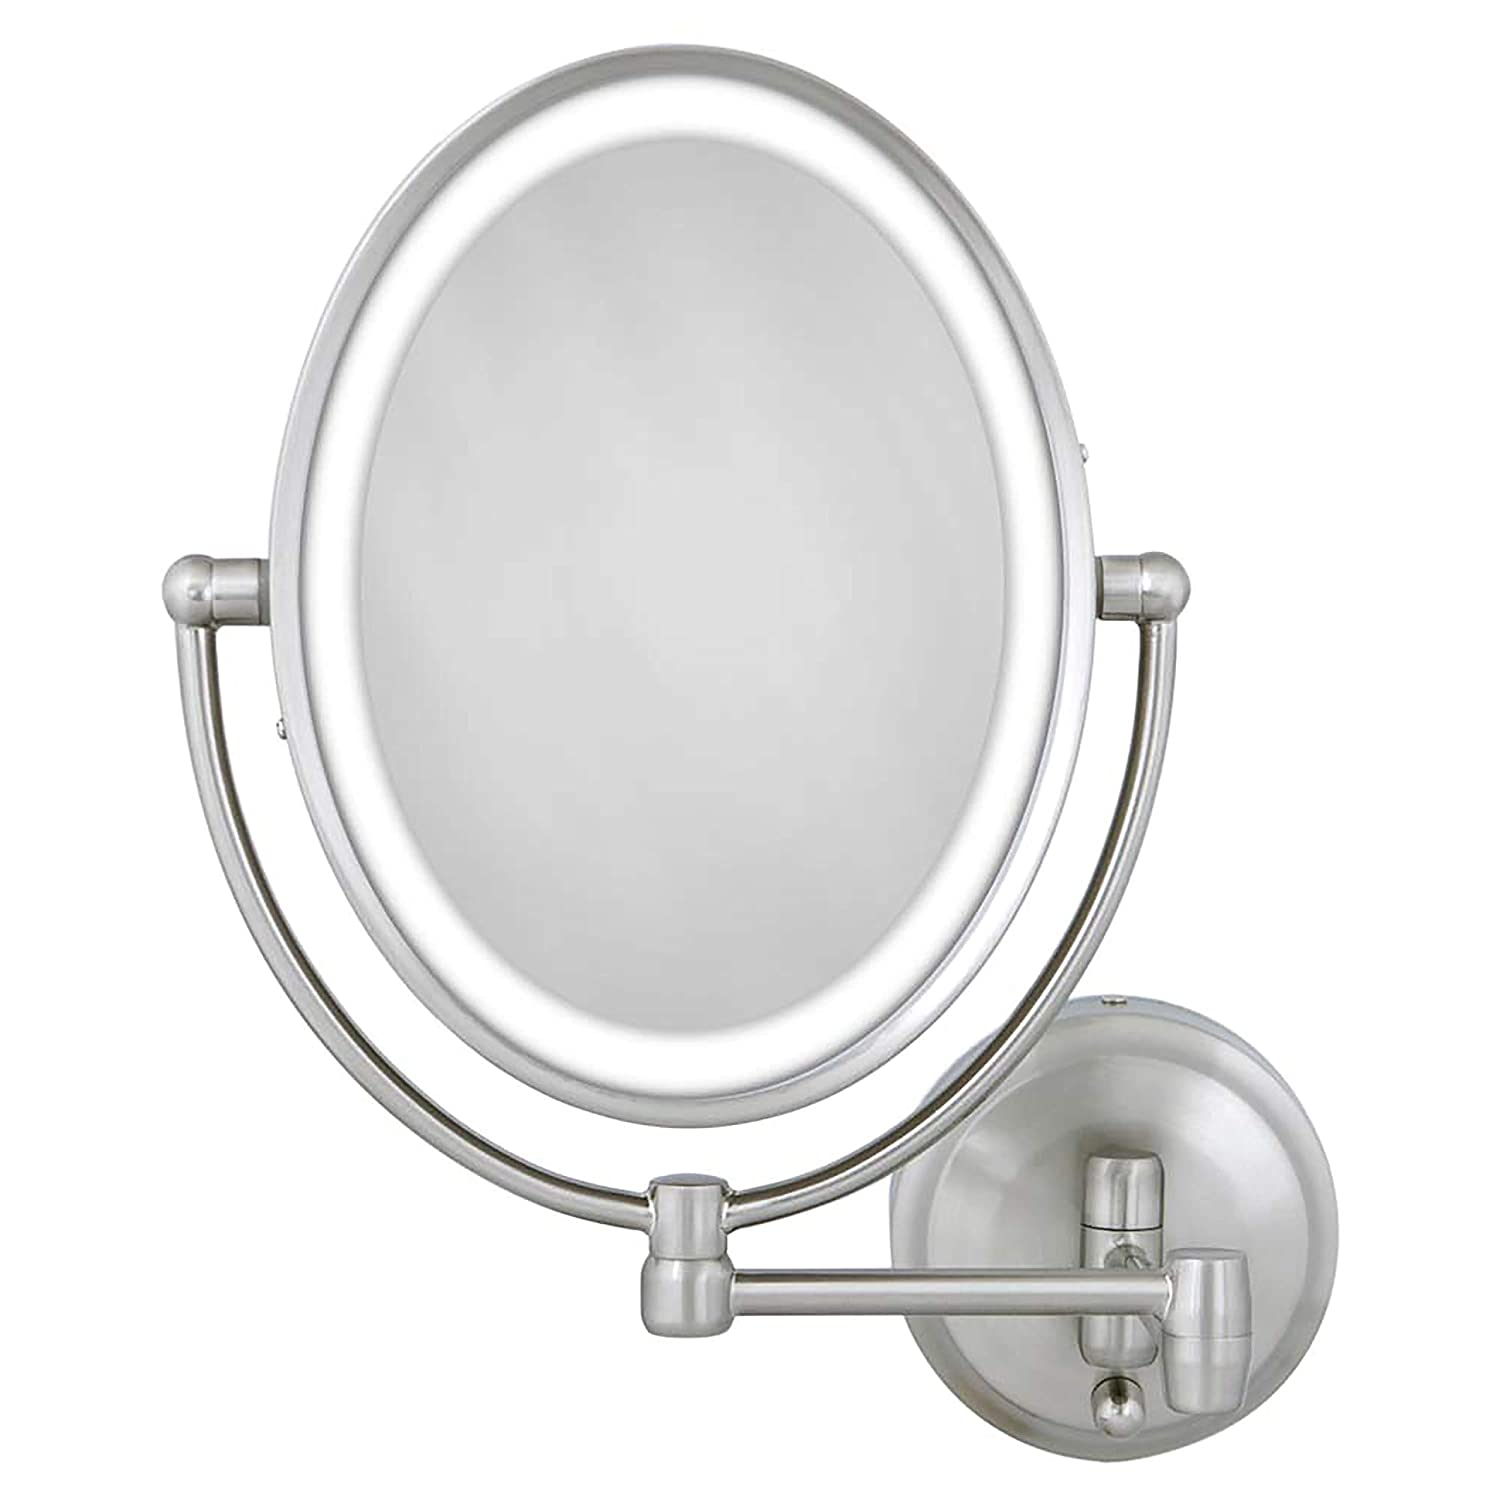 Zadro 10X LED Lighted Wall Mounted Magnifying Makeup Mirror